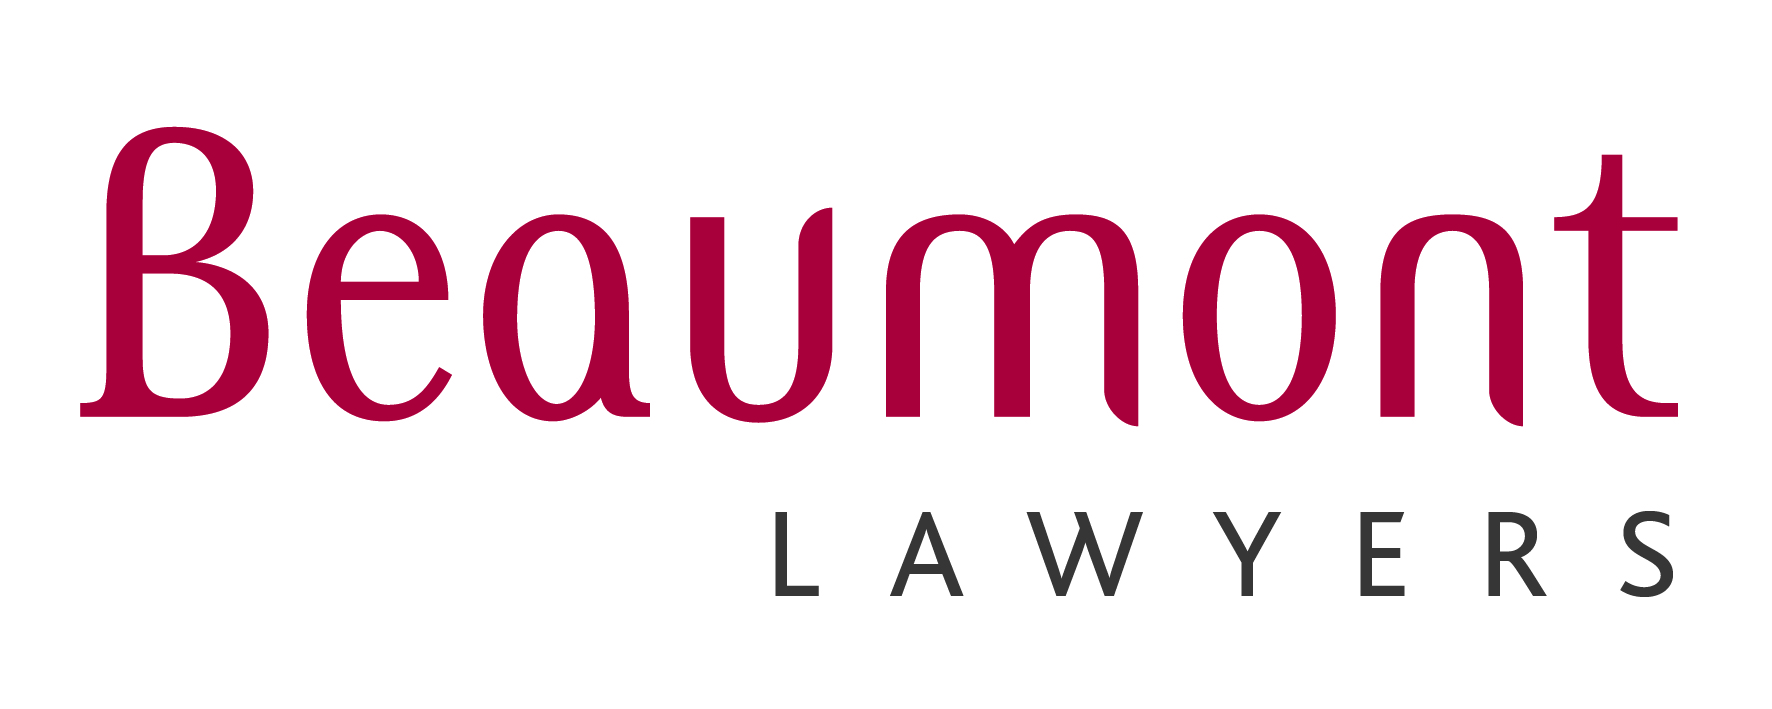 Mooroolbark Lawyers, The Beaumont Group